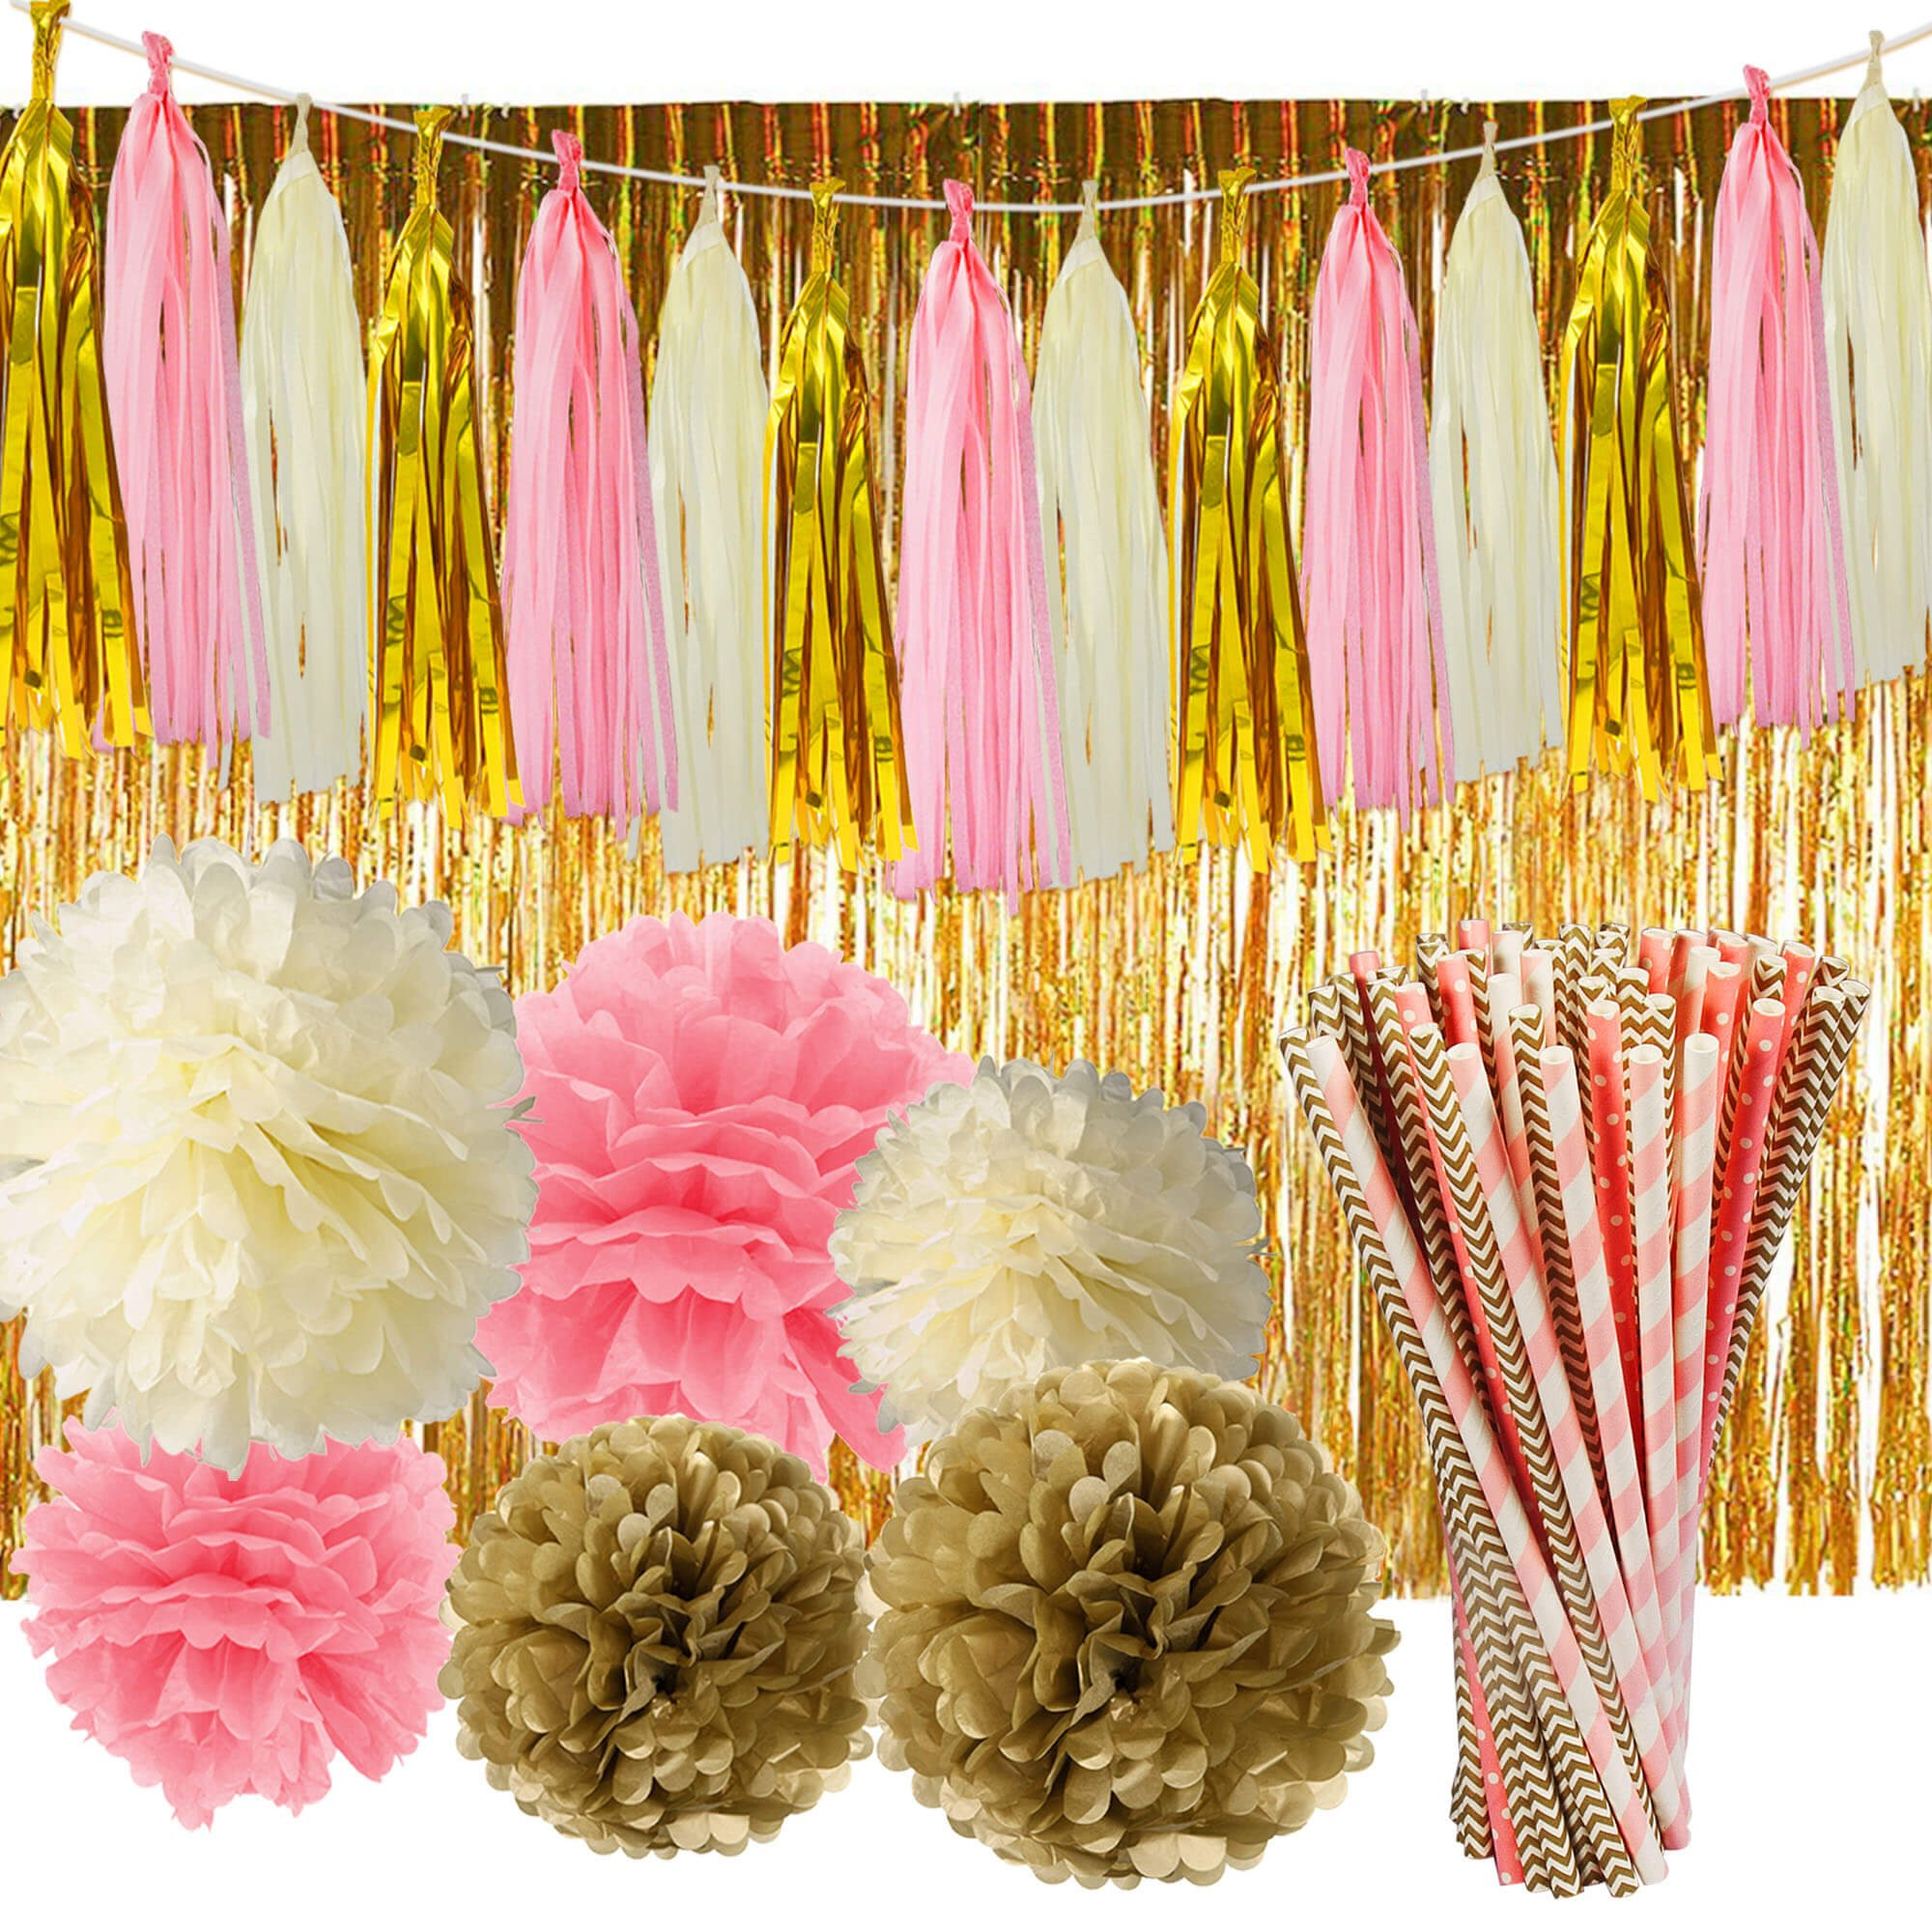 Paxcoo 97 Pcs Pink and Gold Party Supplies with Tassel Garland Paper Flower Pom Poms and Fringe Curtain for Baby Shower Girl 1st Birthday Decorations